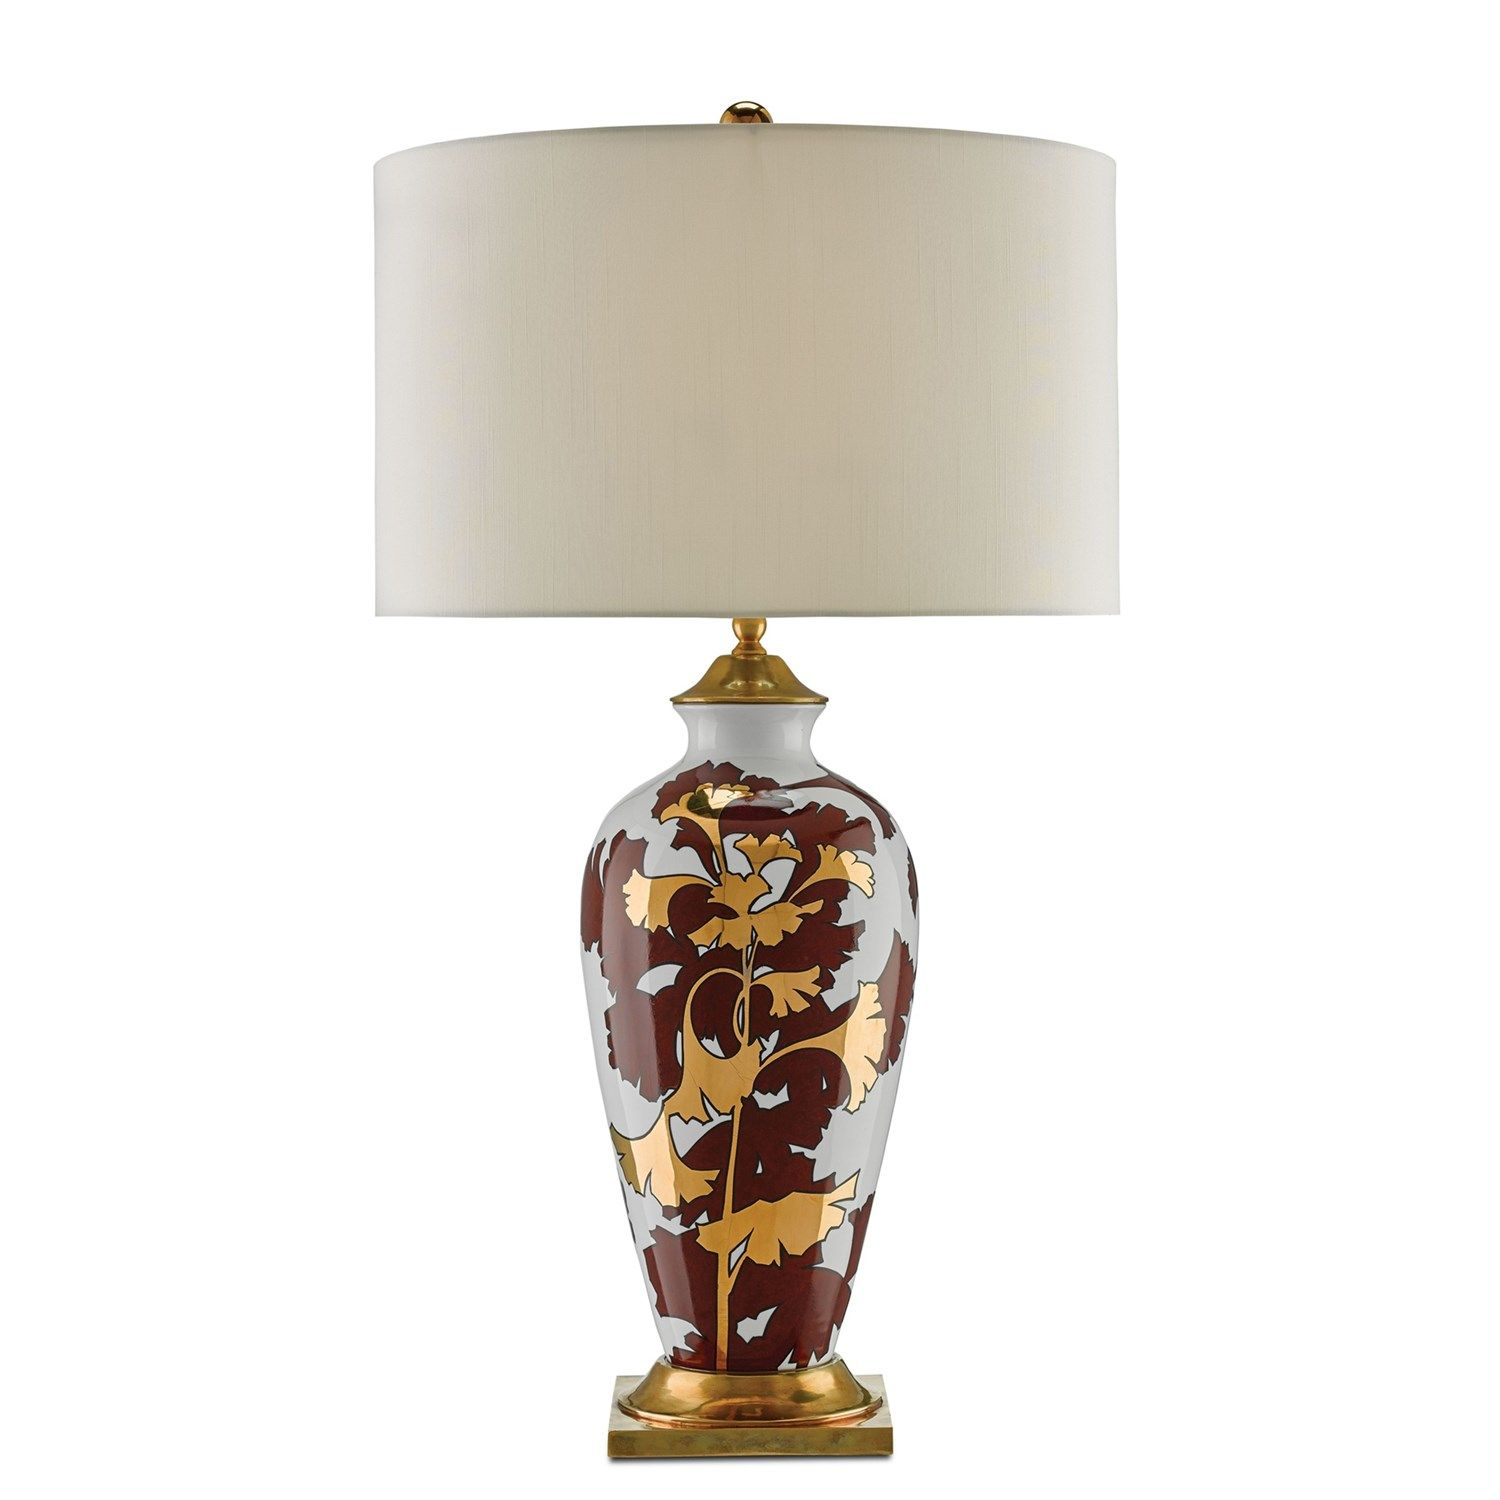 Currey And Company 6000 0009 Eternity 1 Light Table Lamp In Chestnut Red Table Lamp Lamp Floor Lamp Table